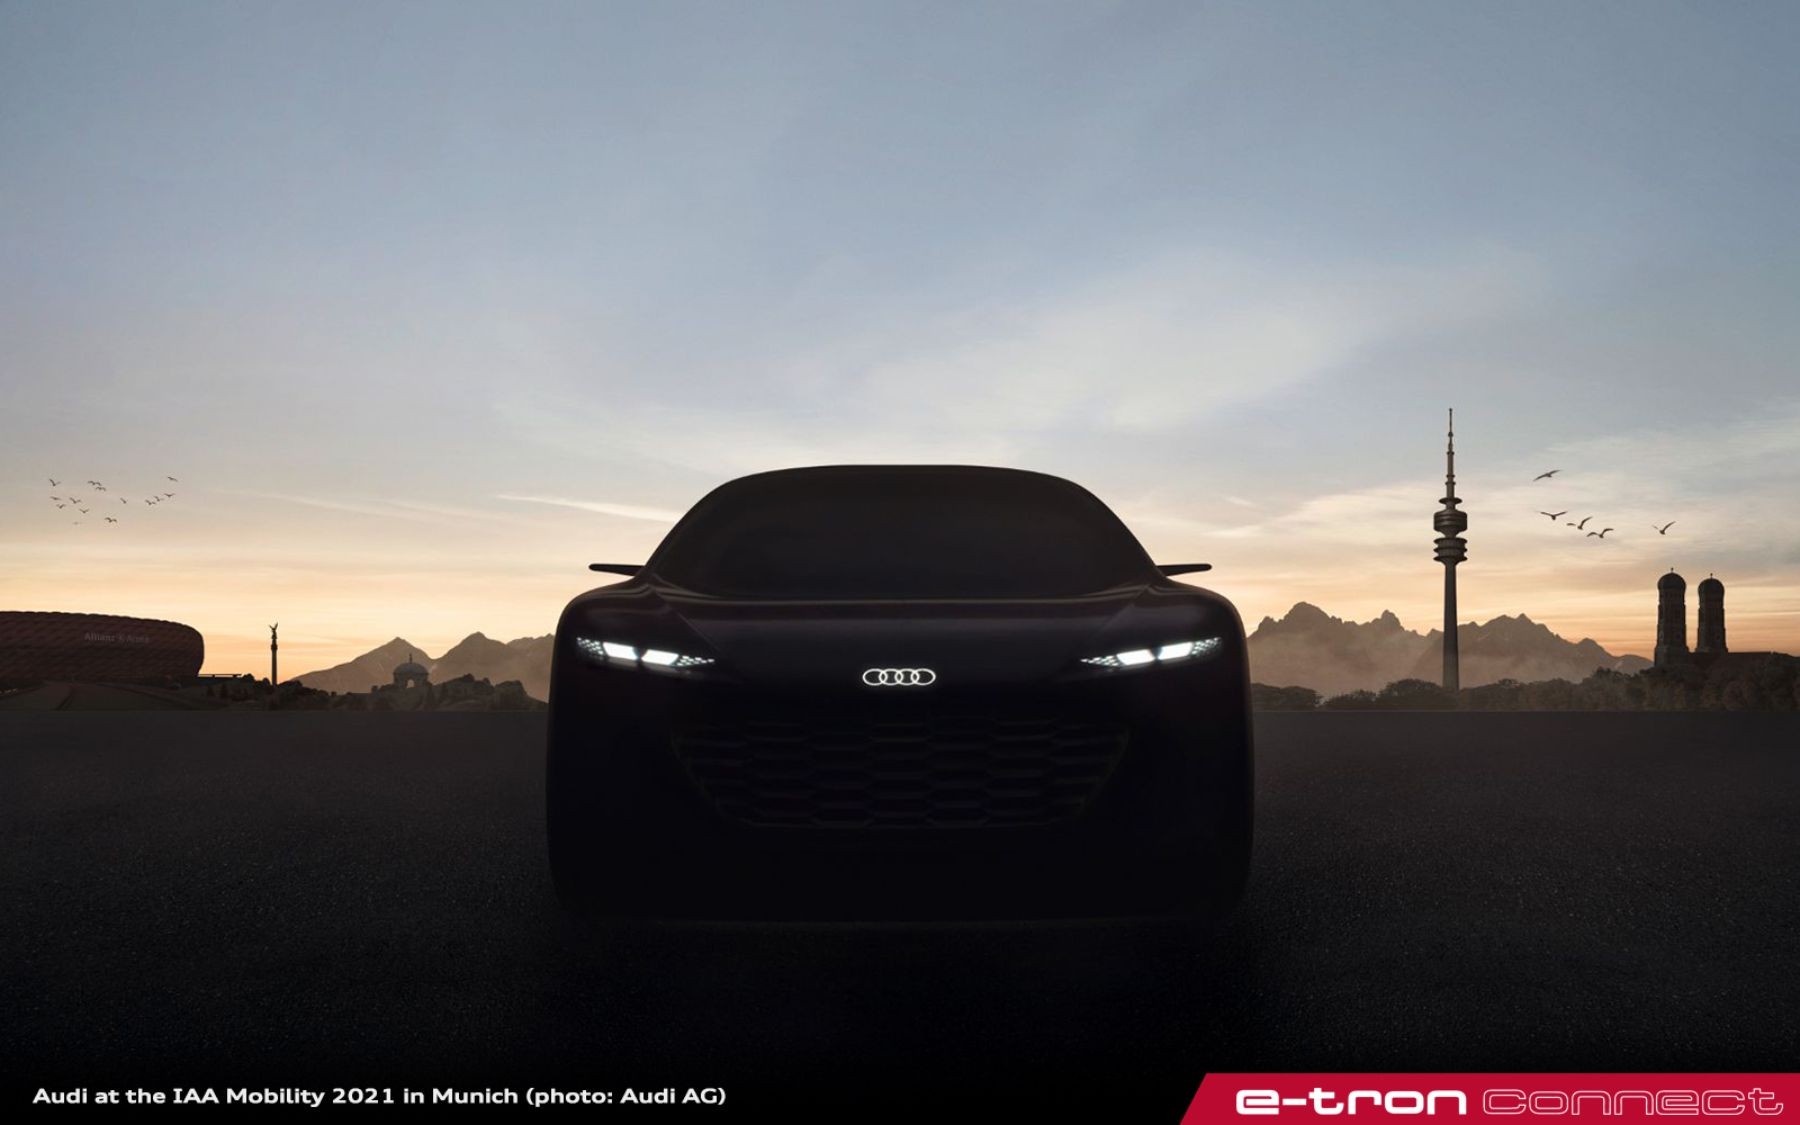 Audi at the IAA Mobility 2021 in Munich